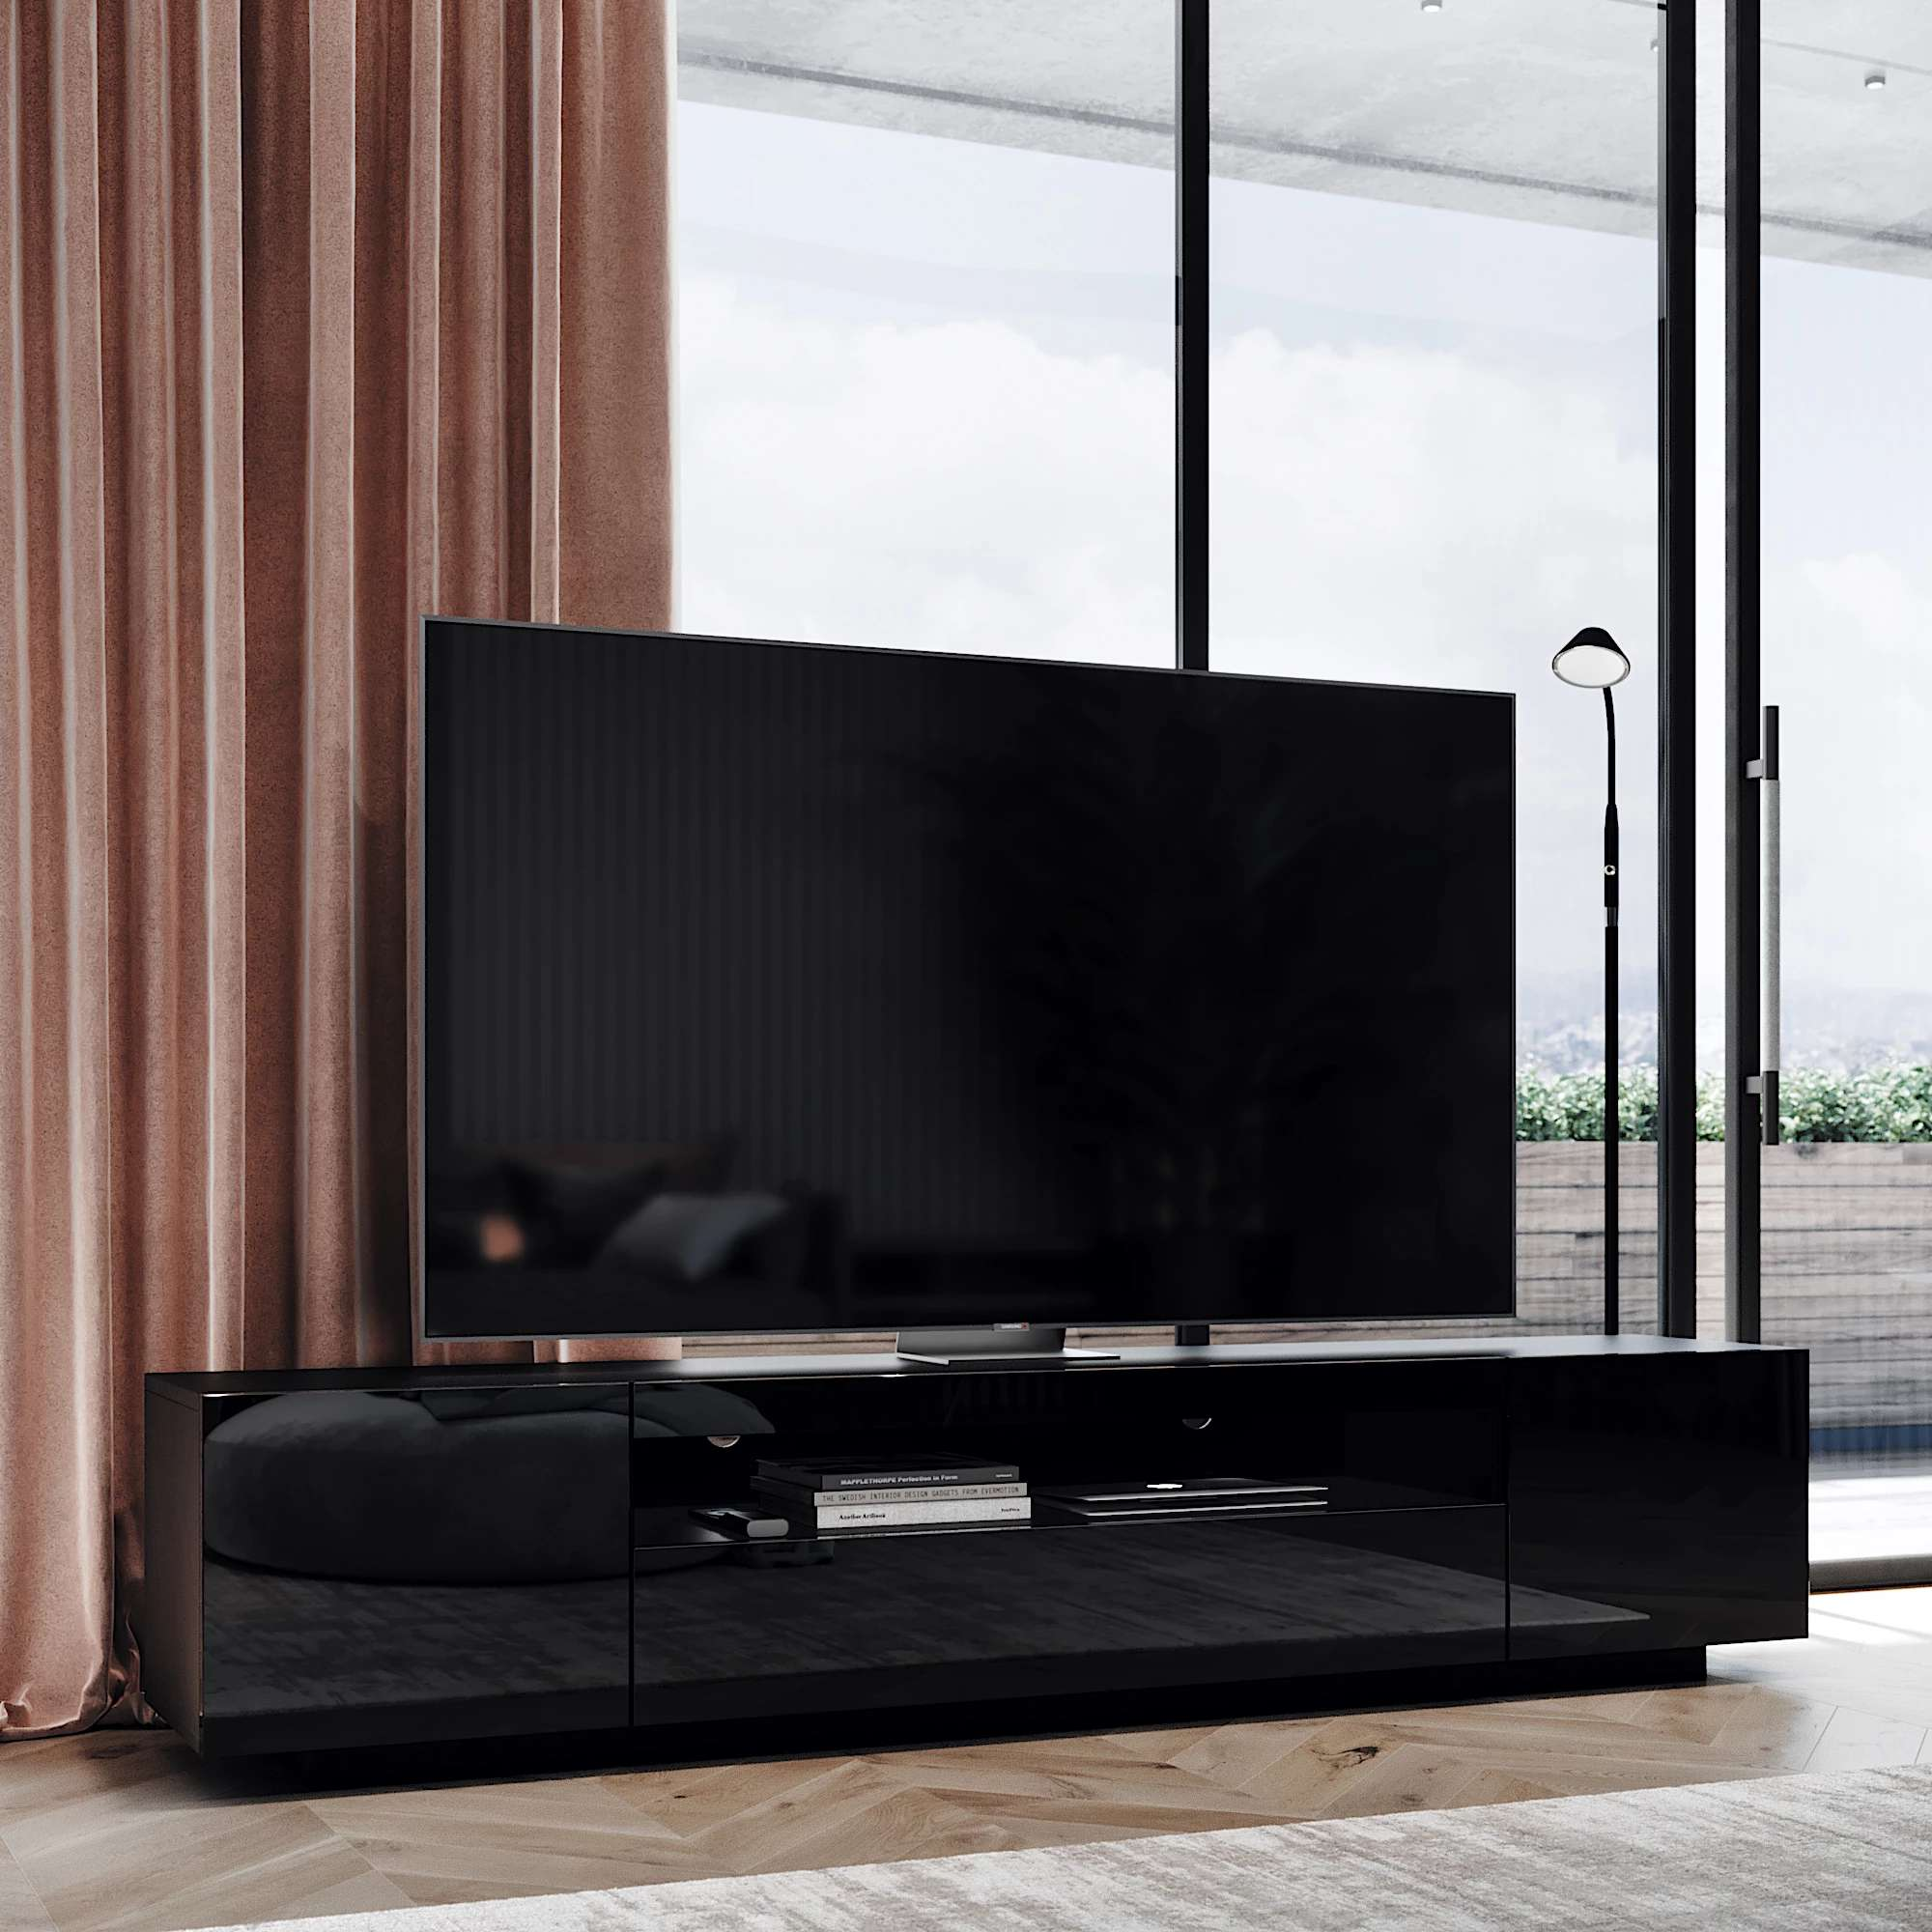 Black Samso TV Cabinet in modern chique Scandinavian living room with an 80 inch flat screen TV